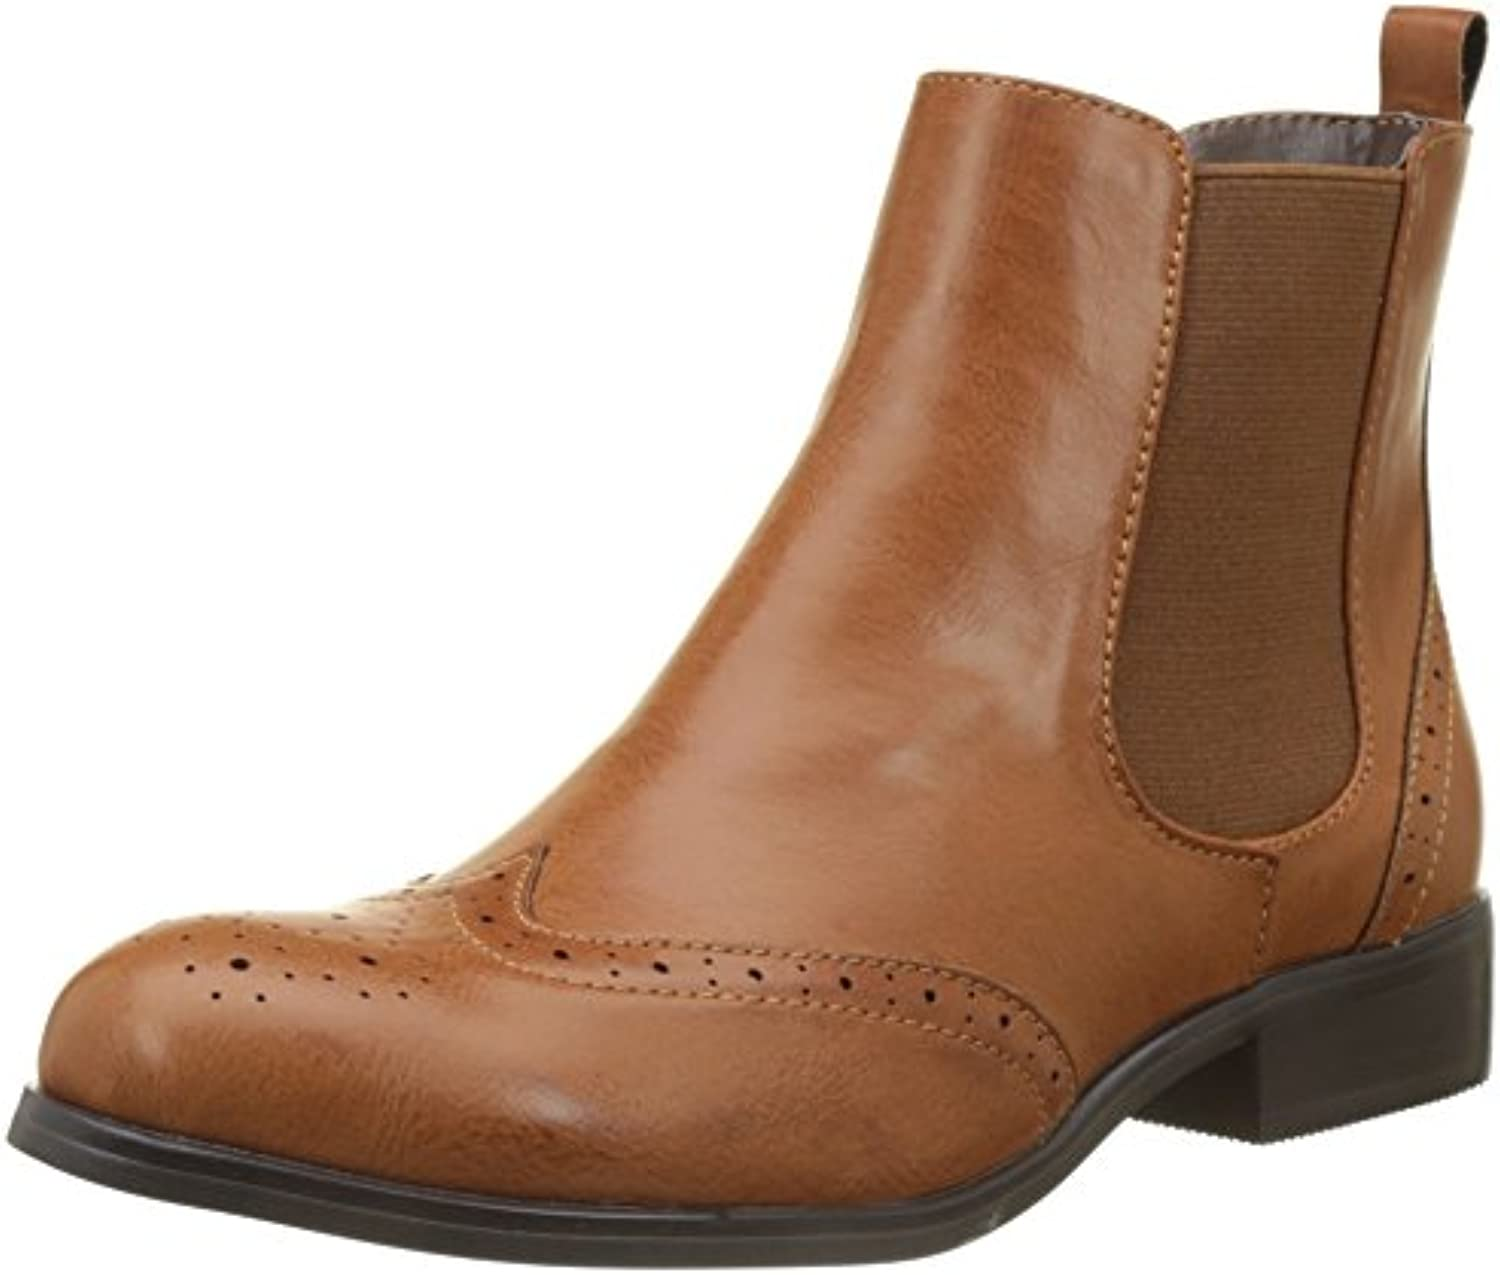 Buffalo Shoes B195a-61 P2173h Leather PU, Botas Chelsea para Mujer